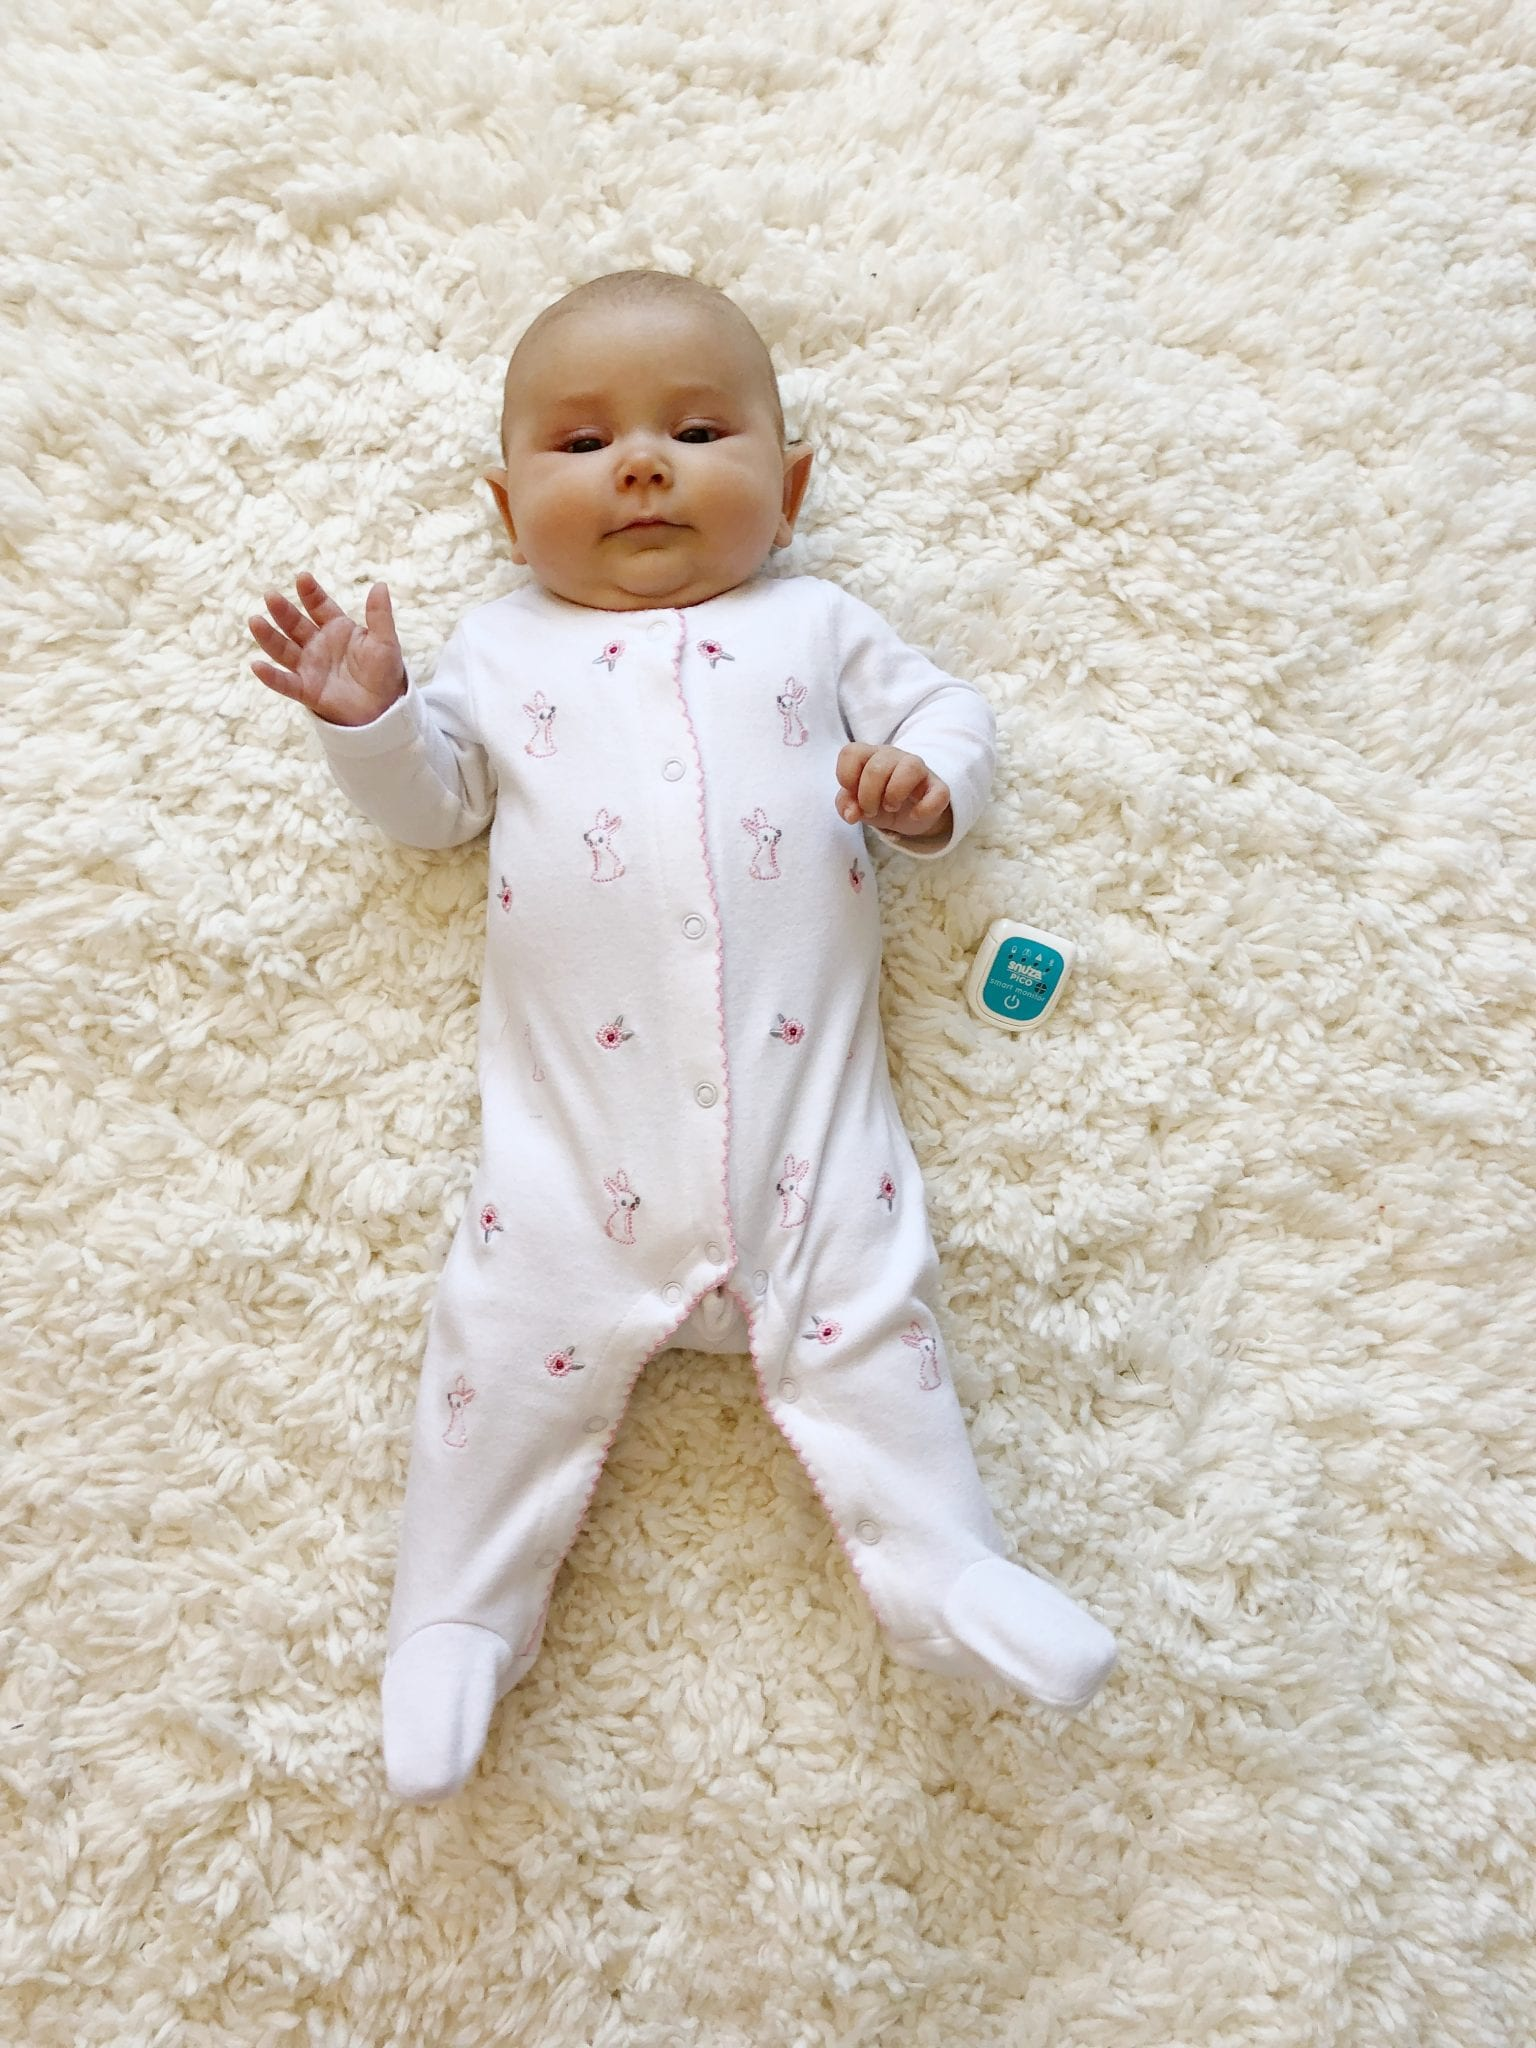 The #1 baby item all new parents need/must-have